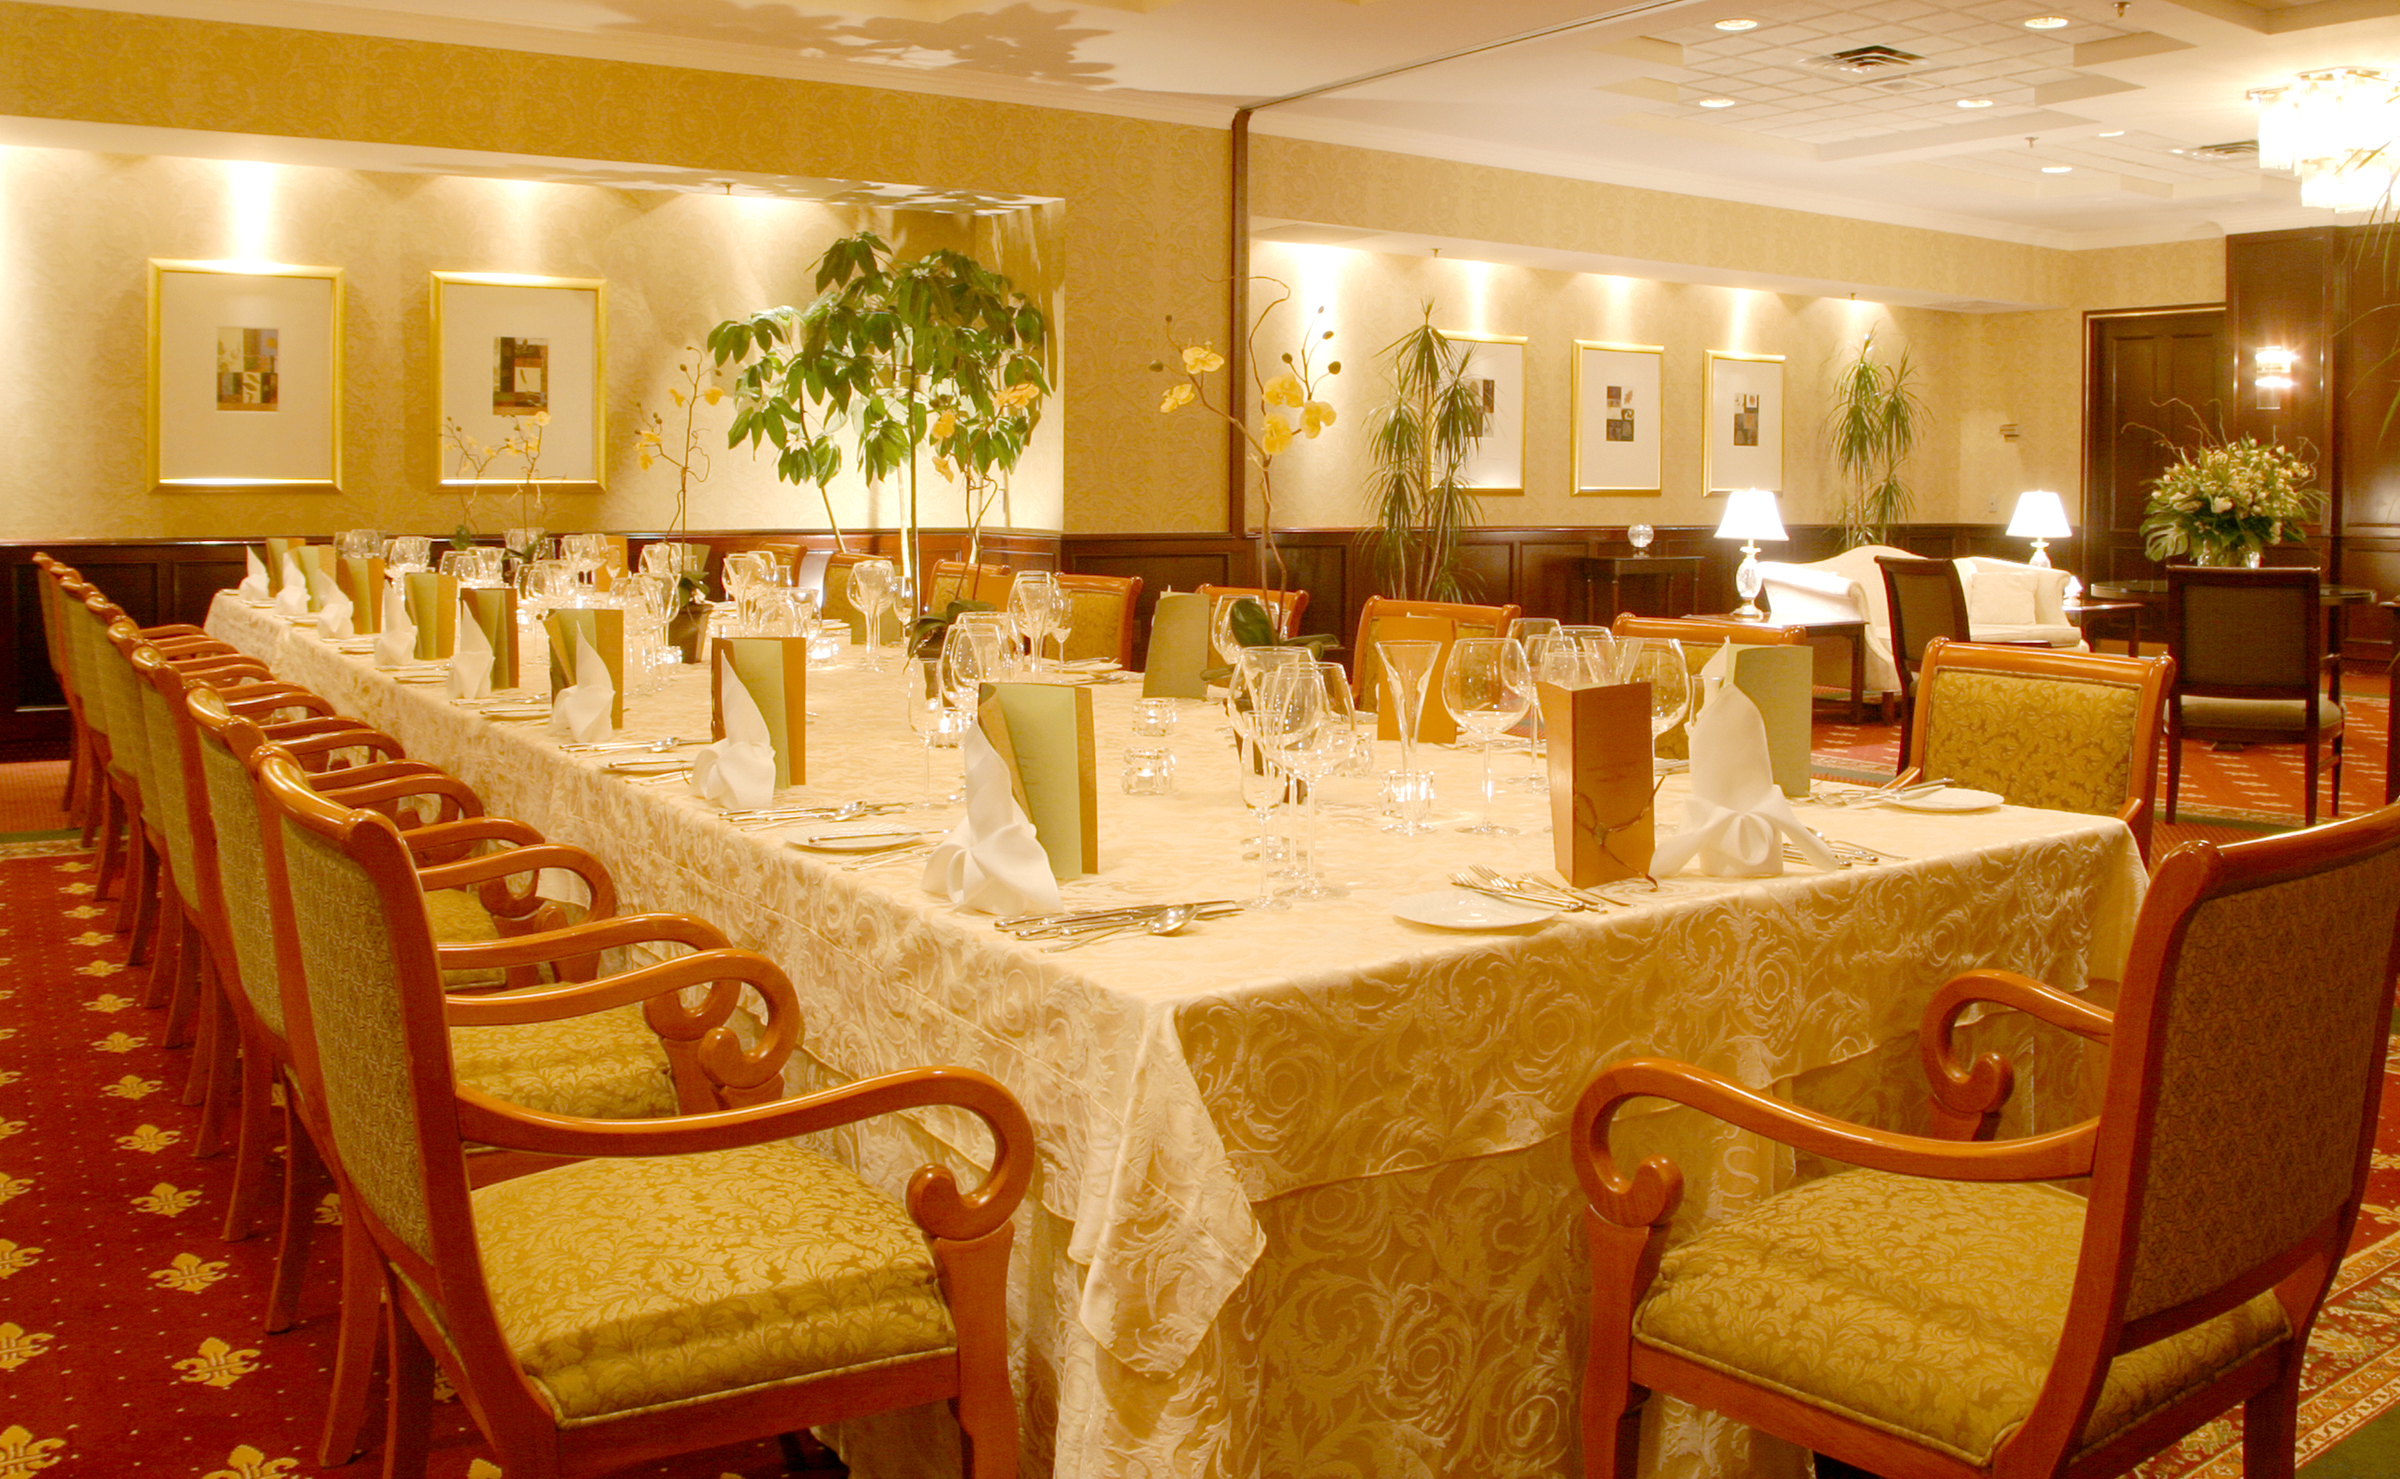 The prince george hotel photo gallery the regency room for Regency dining room